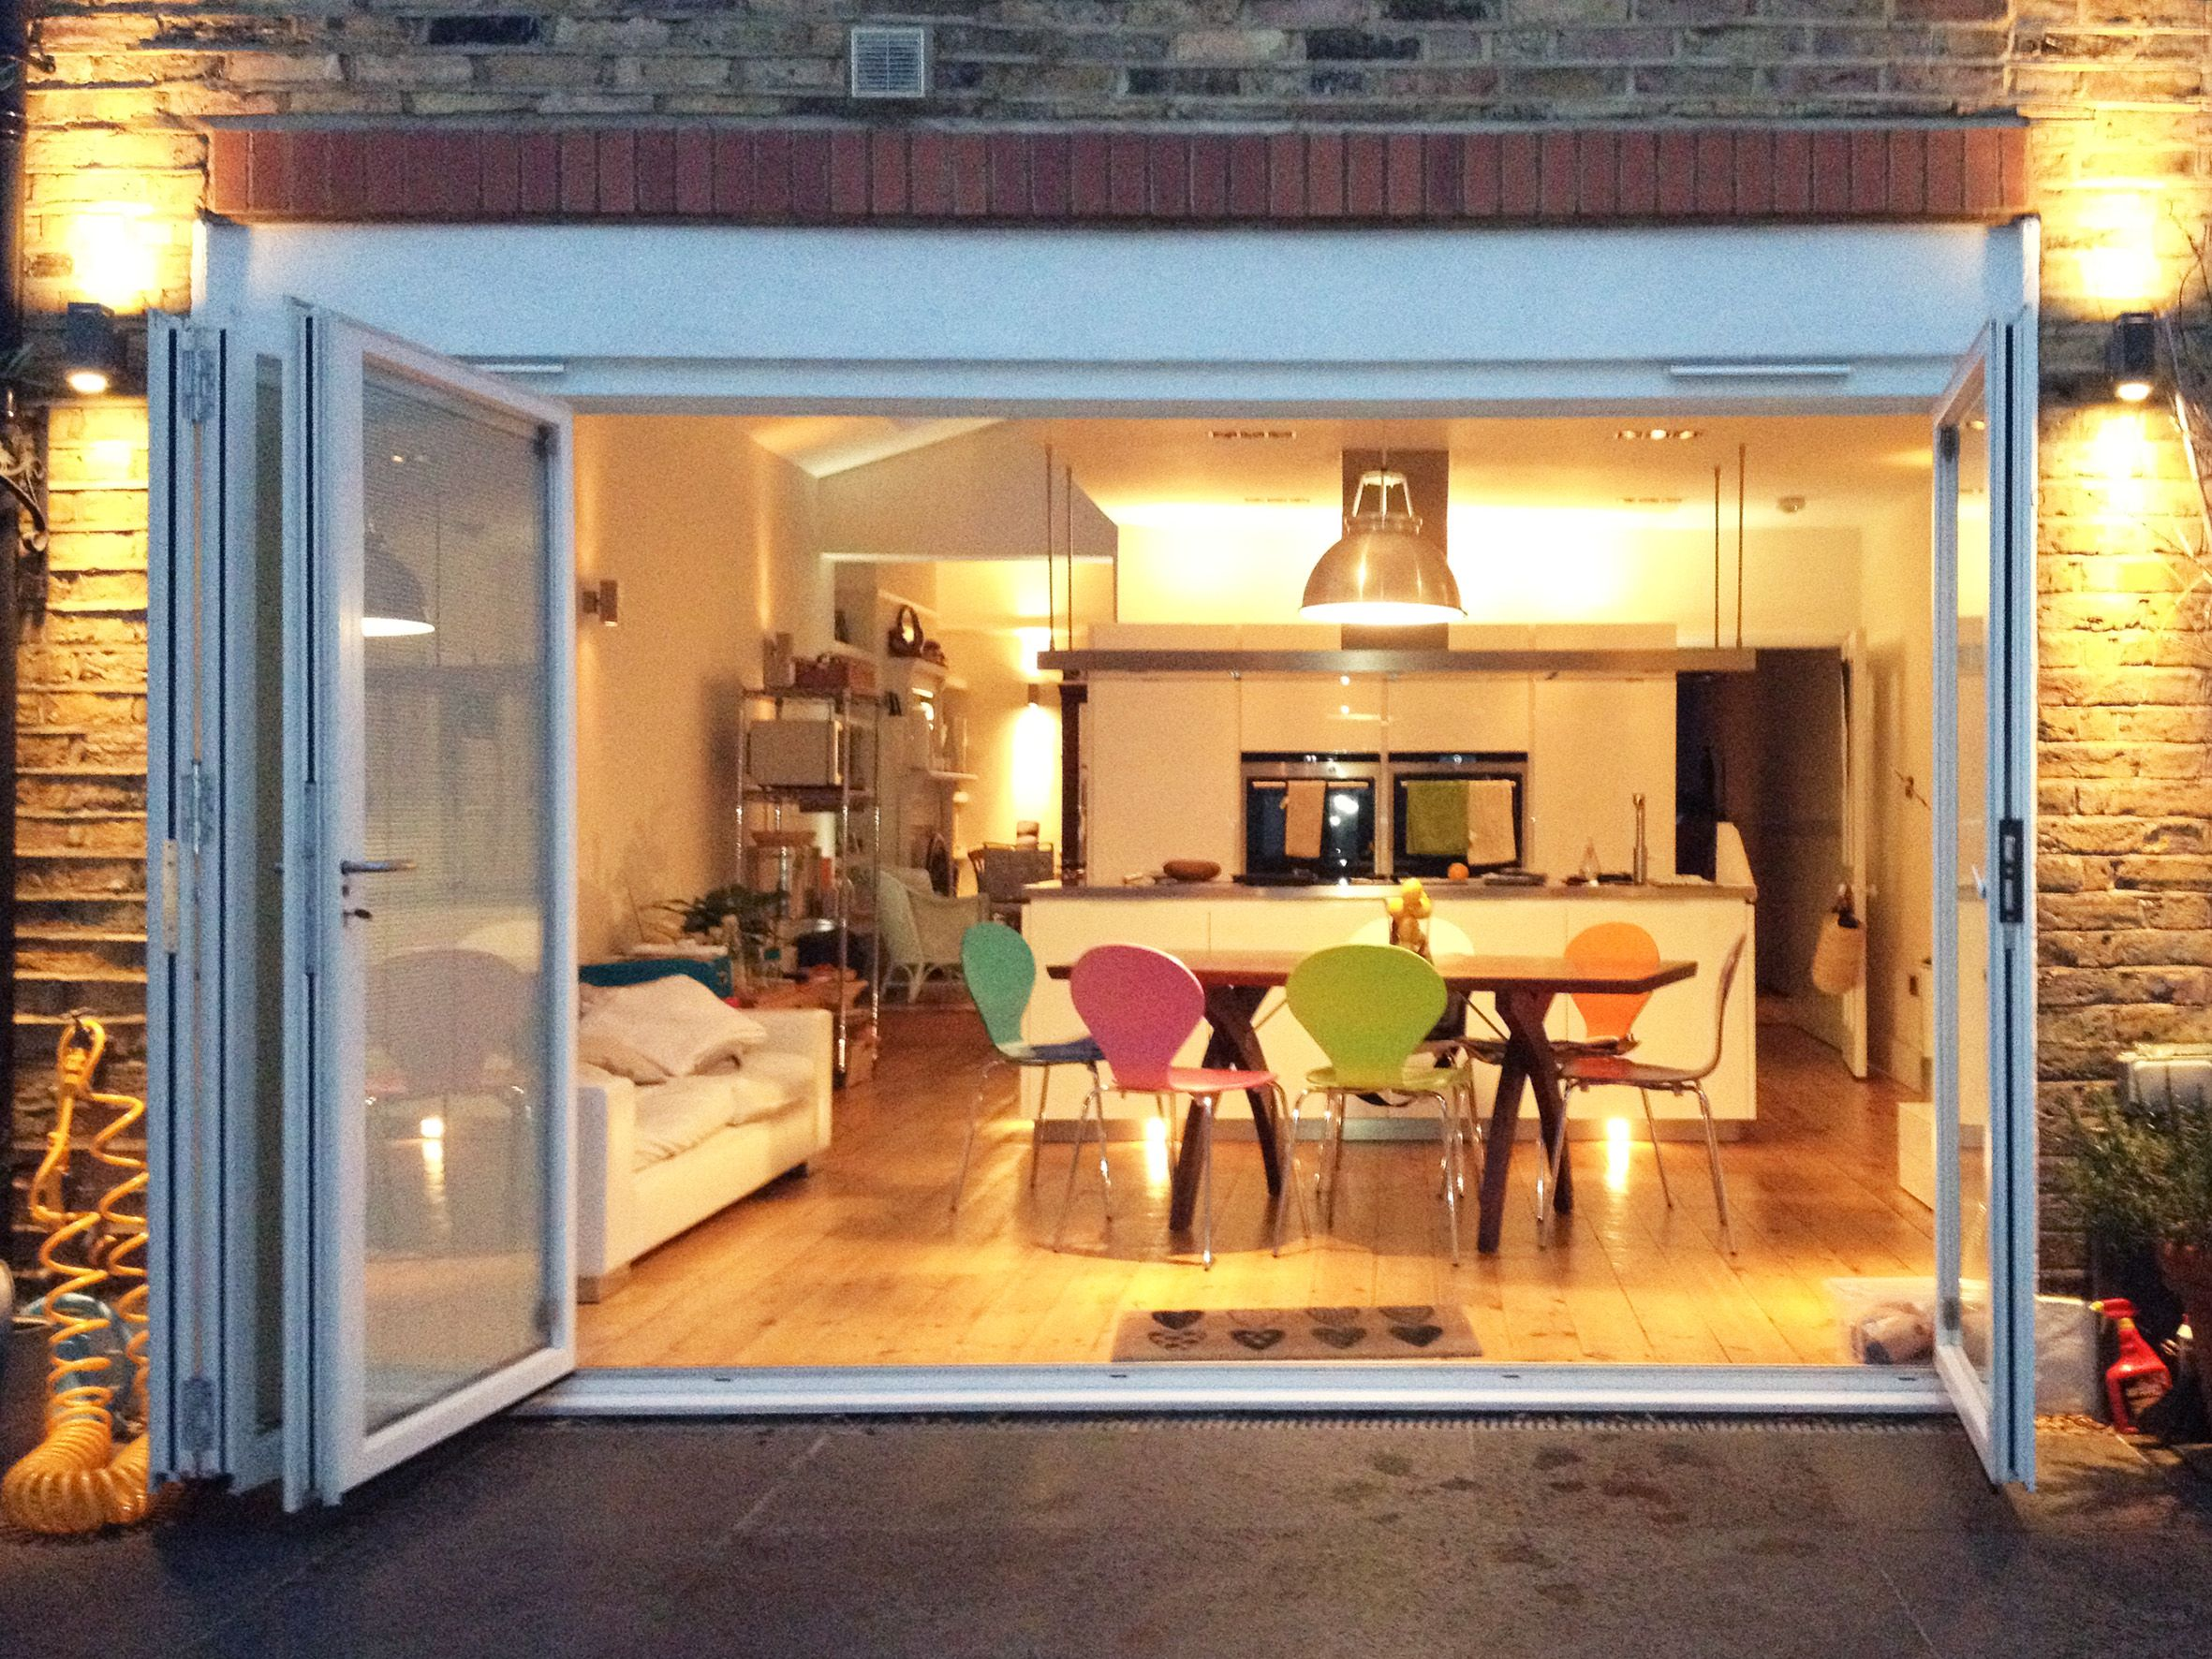 Aluminium 4 panel set of SFK70 bi folding doors to a kitchen ...